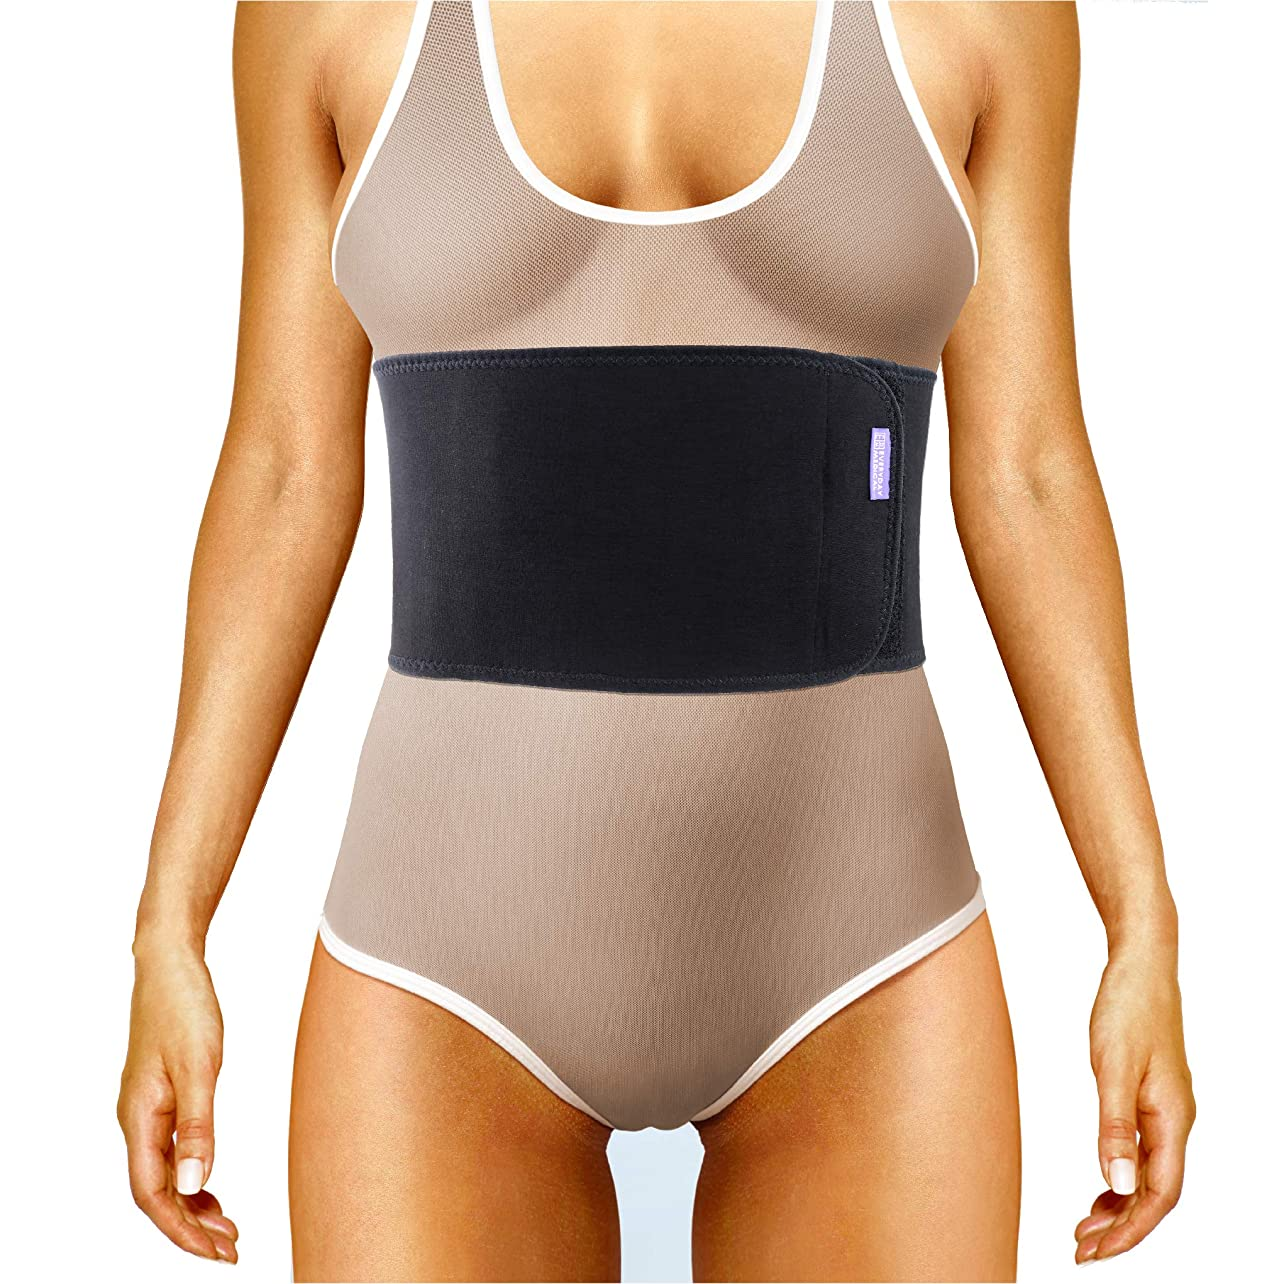 Everyday Medical Broken Rib Brace for Men and Women - Bamboo Charcoal Rib Support Compression Brace - accelerates The Healing of Cracked, Dislocated, Fractured and Post-Surgery Ribs - XLarge aoassbwlqkq79